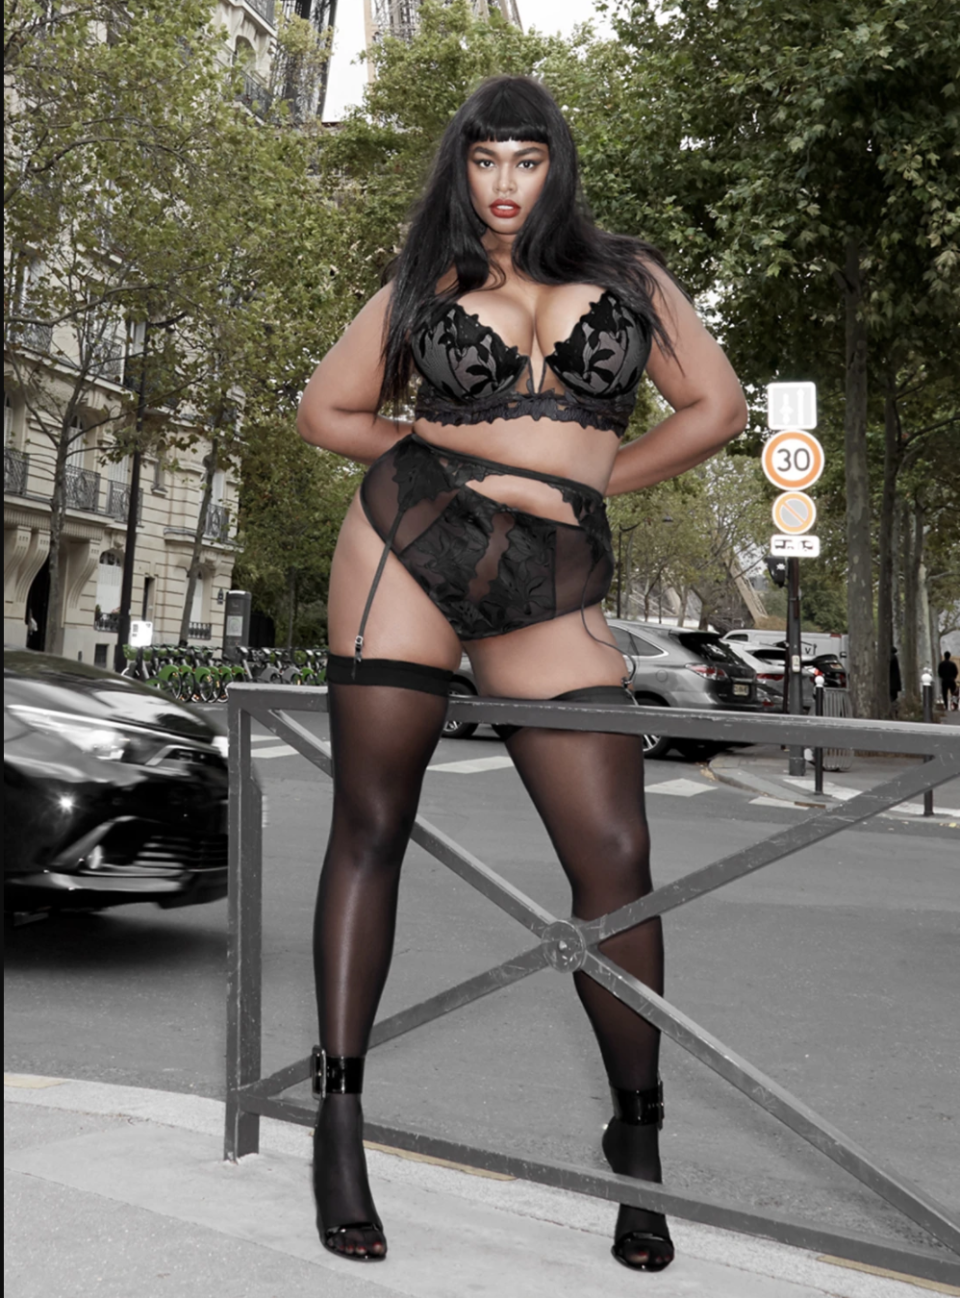 """<p class=""""body-dropcap"""">We all need reliable pieces of lingerie. But we also want undergarments that have a little fun, ensuring that every element of our outfit truly reflects how we're feeling. With this in mind, finding lingerie that is chic <em>and</em> supportive to fit a bigger bust isn't always easy. And though many brands that offer extended sizing tend to keep their styles simple and built for purpose, there are a few that aren't afraid to combine utility and style. Ahead, 19 brands that are doing exciting things in the plus-size lingerie world, accompanied by my favorite pieces from their current collections. </p>"""